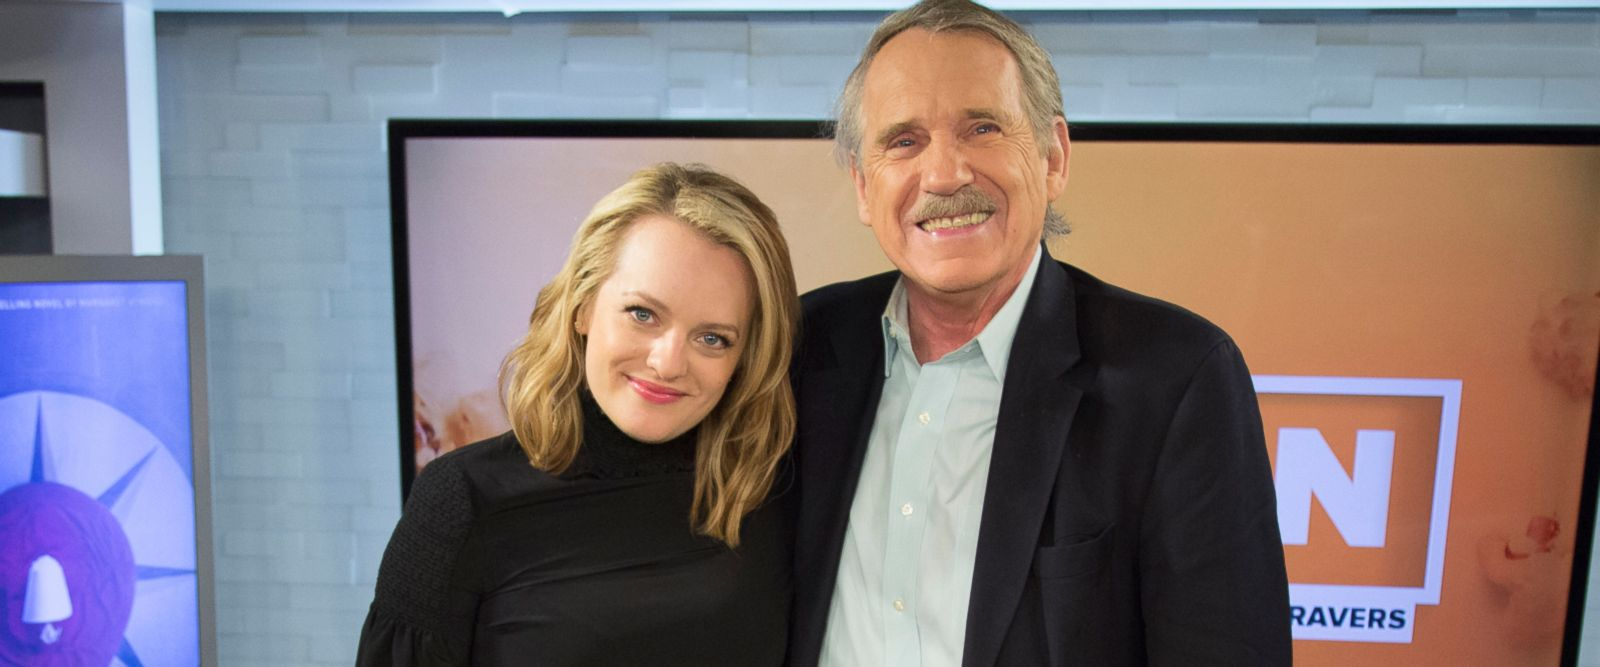 VIDEO: Elisabeth Moss on the making of 'The Handmaid's Tale'